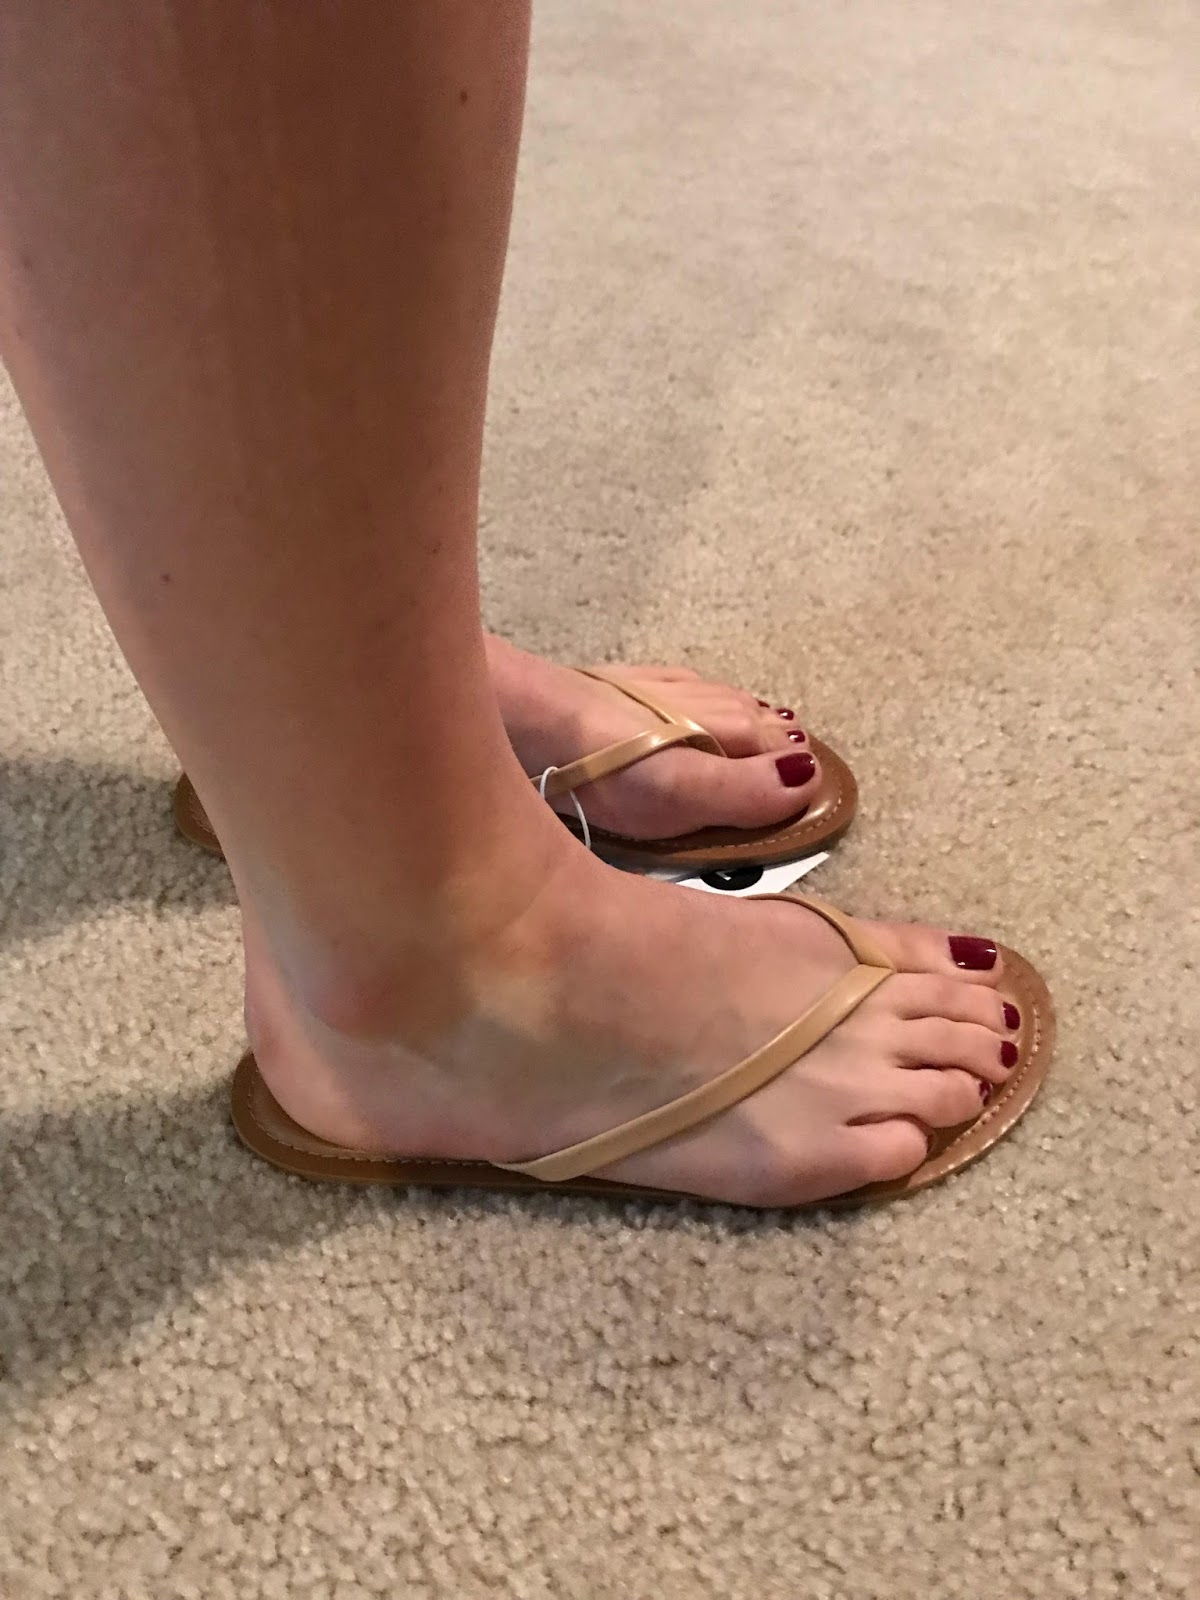 f58221992119 I m always looking for new flip flops because I live in them as soon as the  weather gets warm. I was super excited to see these nude ones because they  are ...